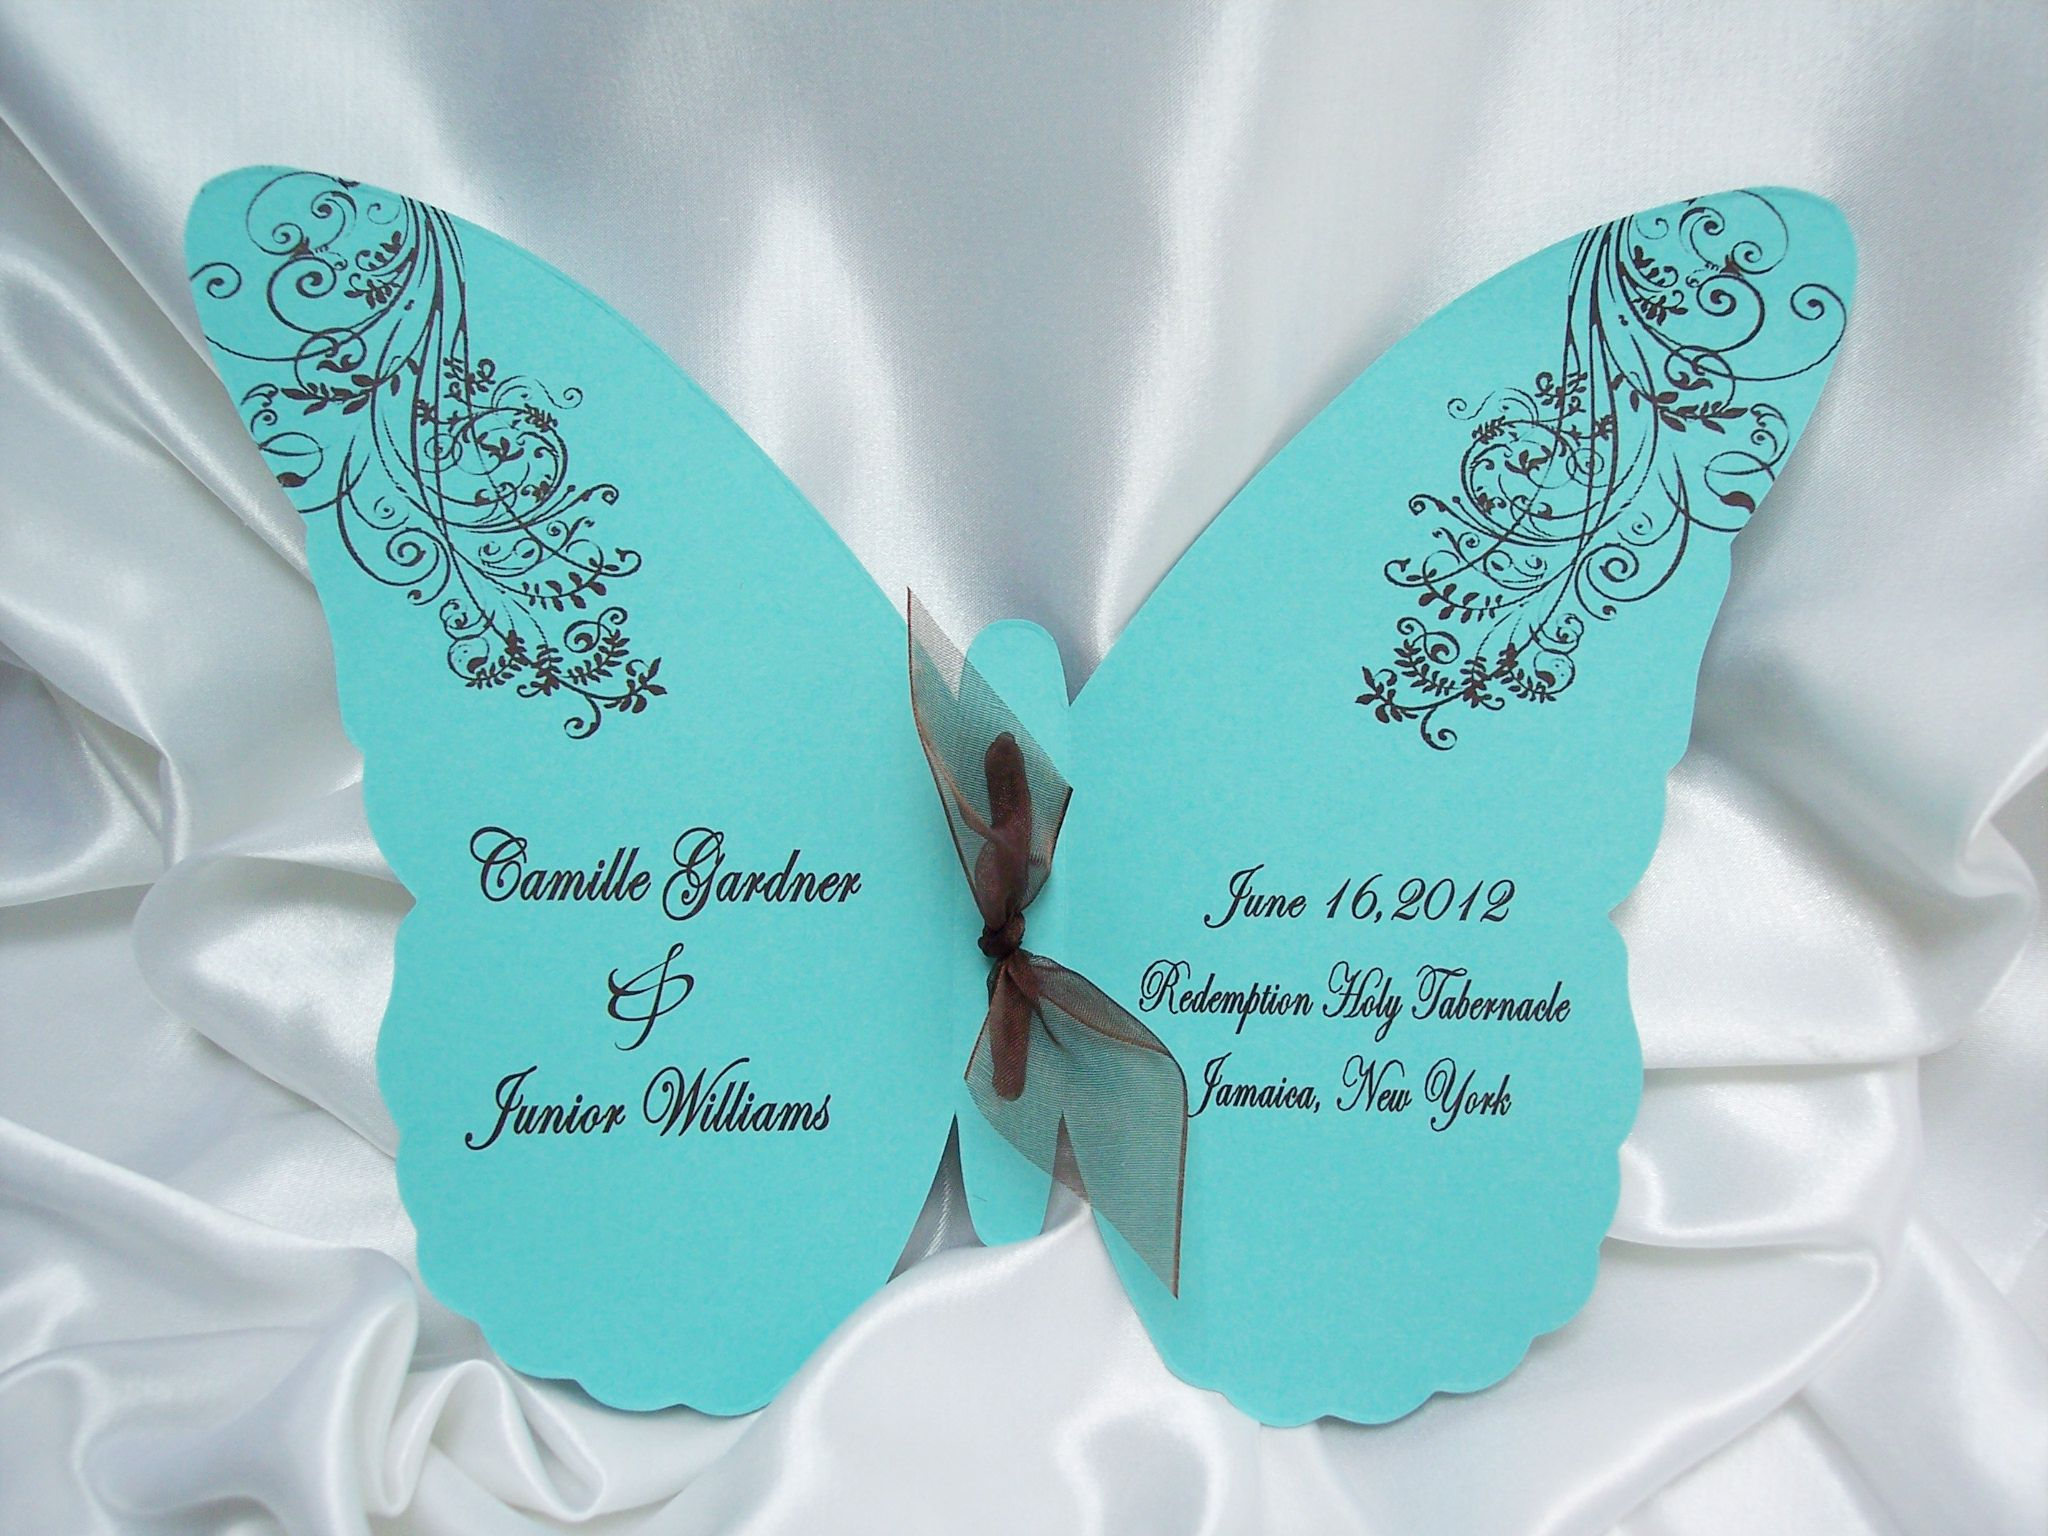 Wedding Invited Erfly Shaped Just For Me Pinterest Shapes And